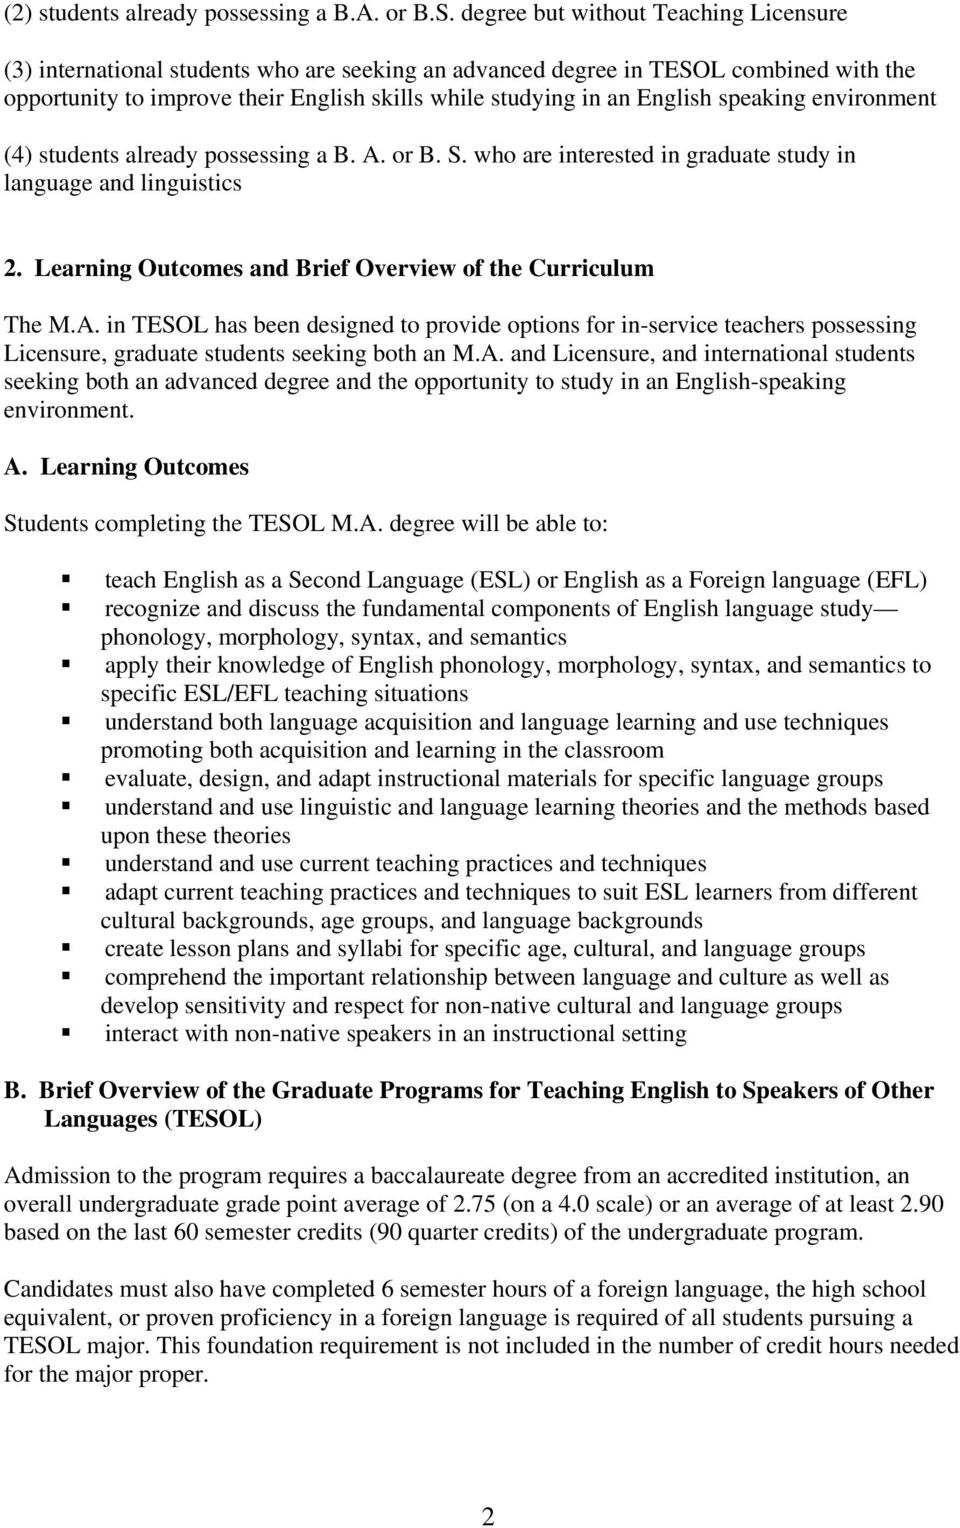 speaking environment (4) students already possessing a B. A. or B. S. who are interested in graduate study in language and linguistics 2. Learning Outcomes and Brief Overview of the Curriculum The M.